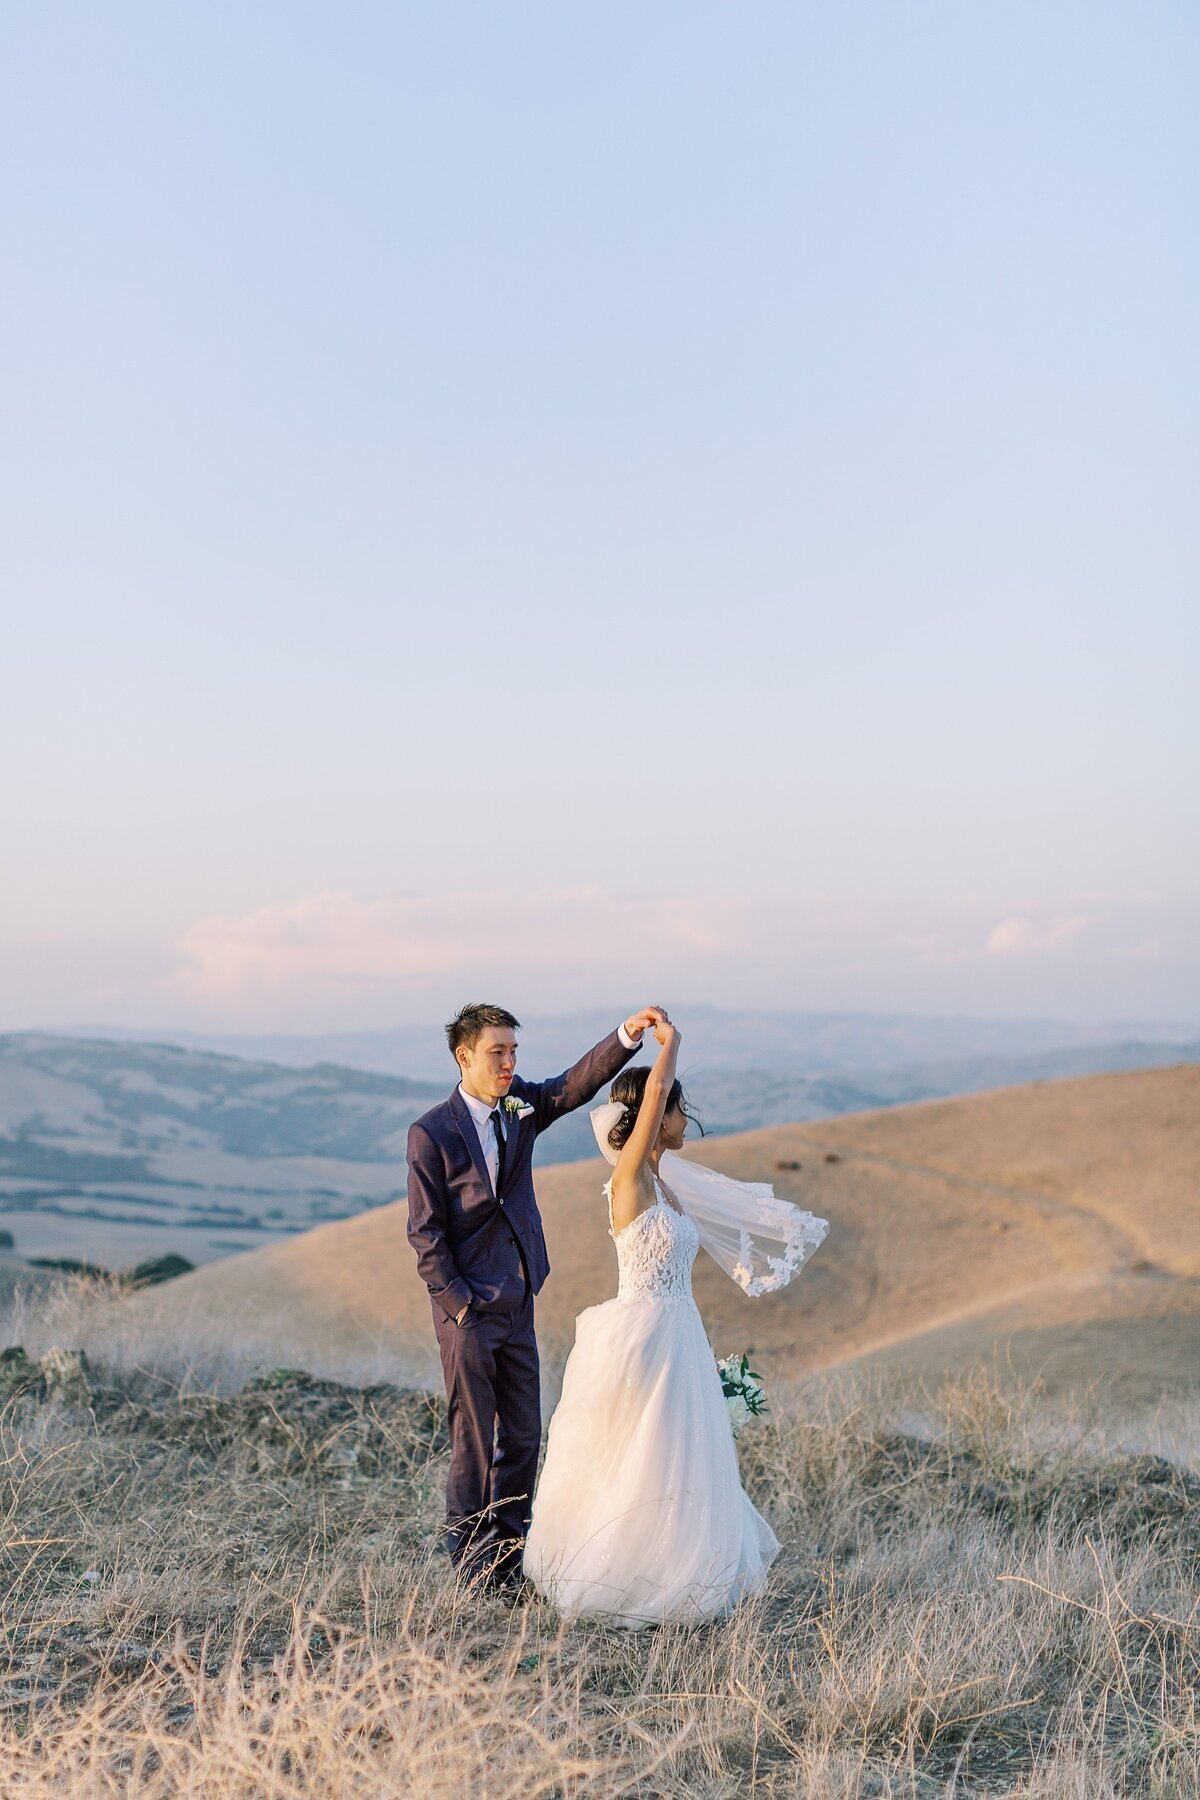 20190928Cammane and Simon's Vineyard Wedding_Nella Terra Cellars_Sunol_Bethany Picone Photography - 274_WEB